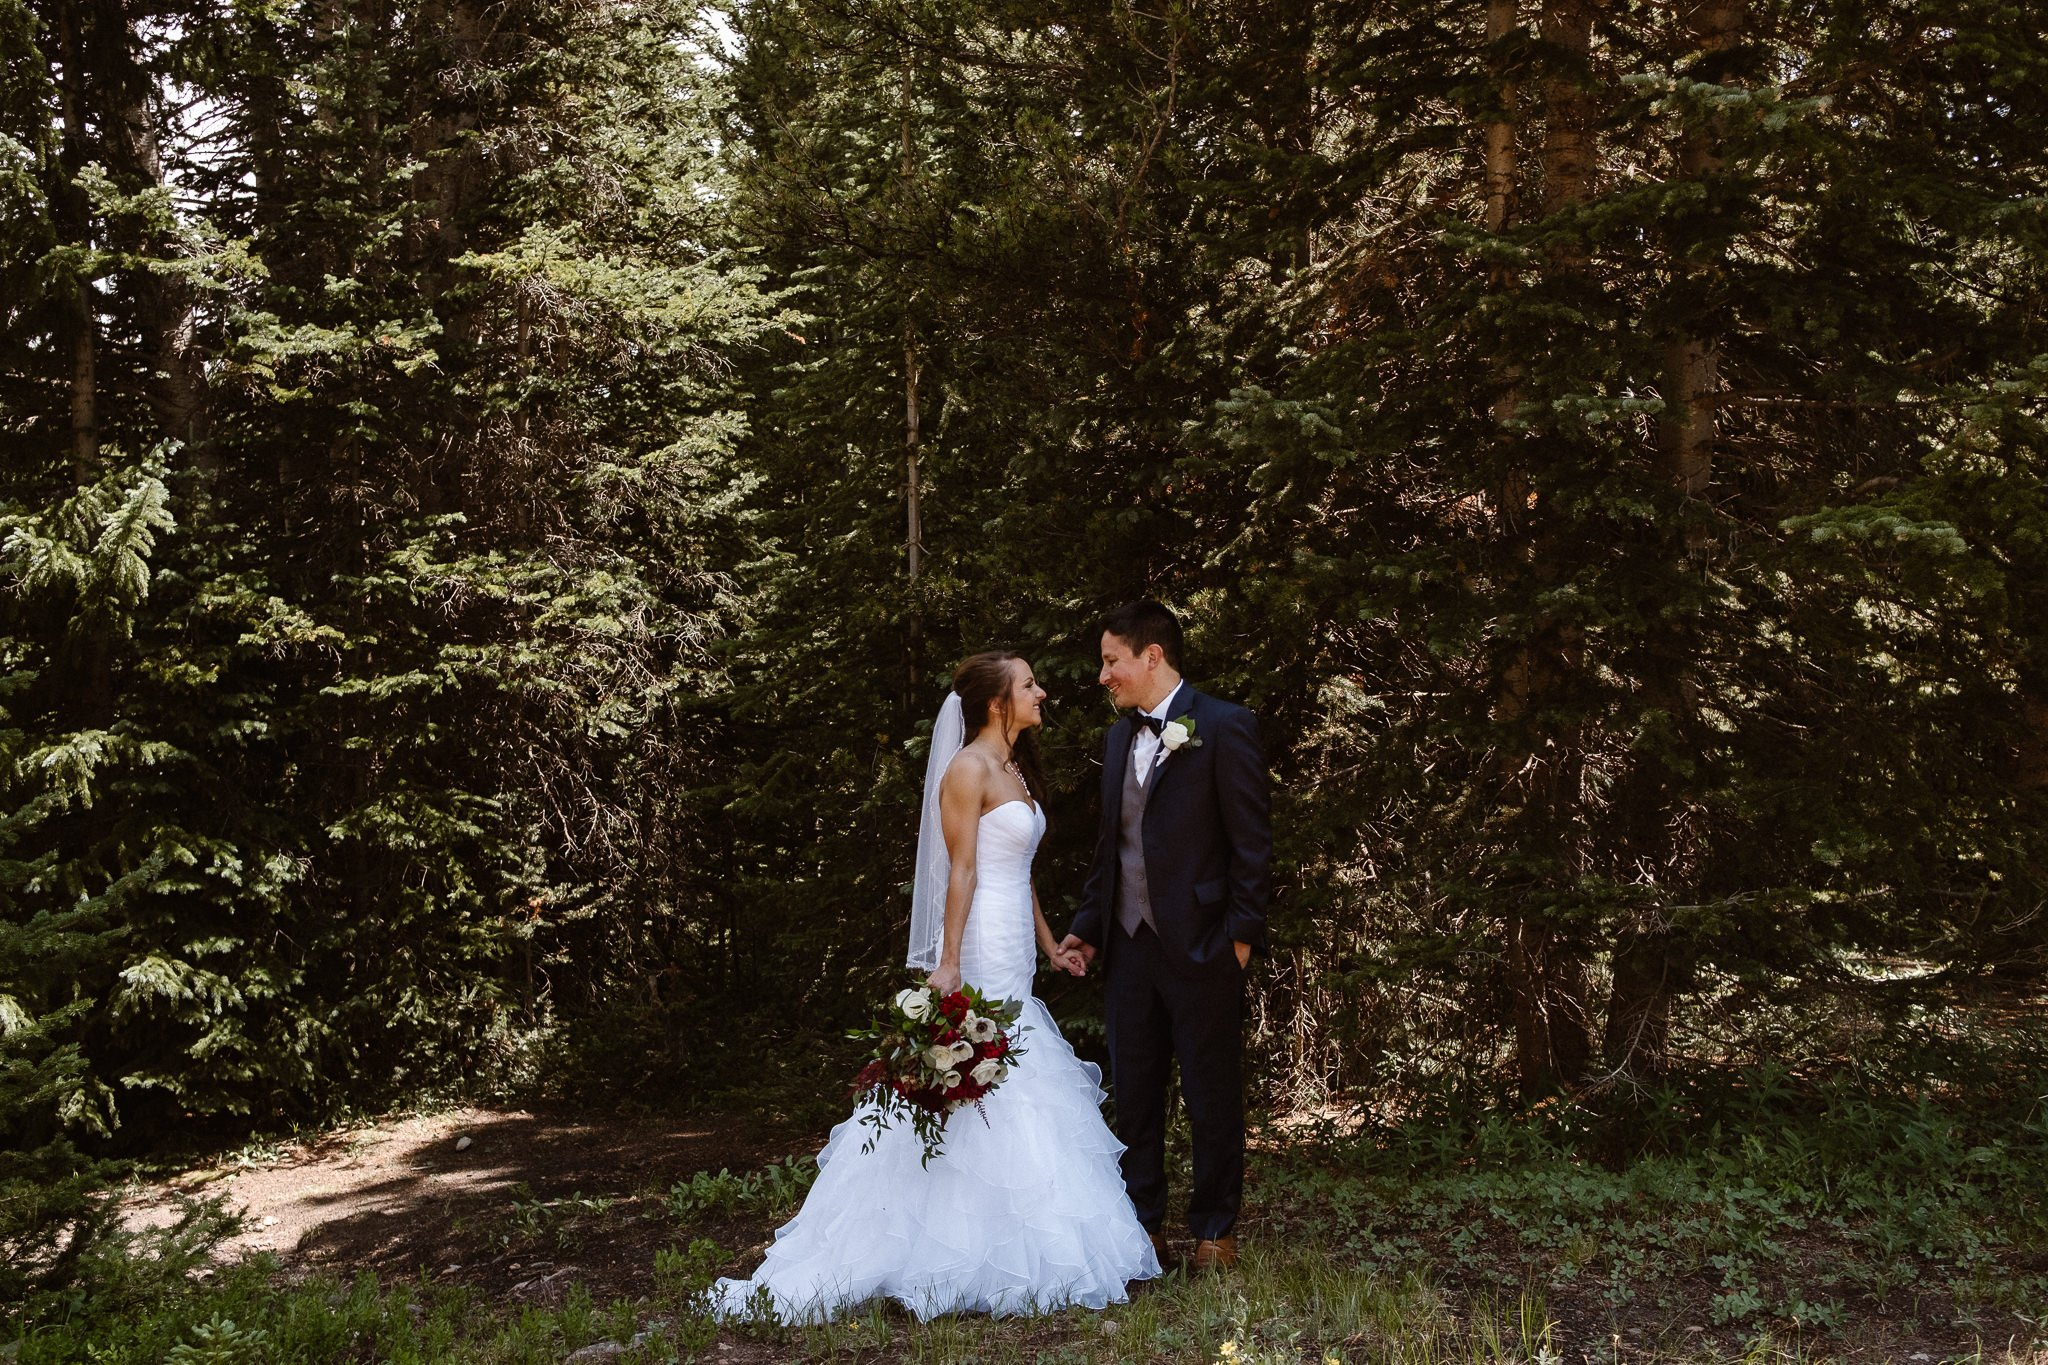 Bride and groom in the woods at The Lodge at Breckenridge wedding.